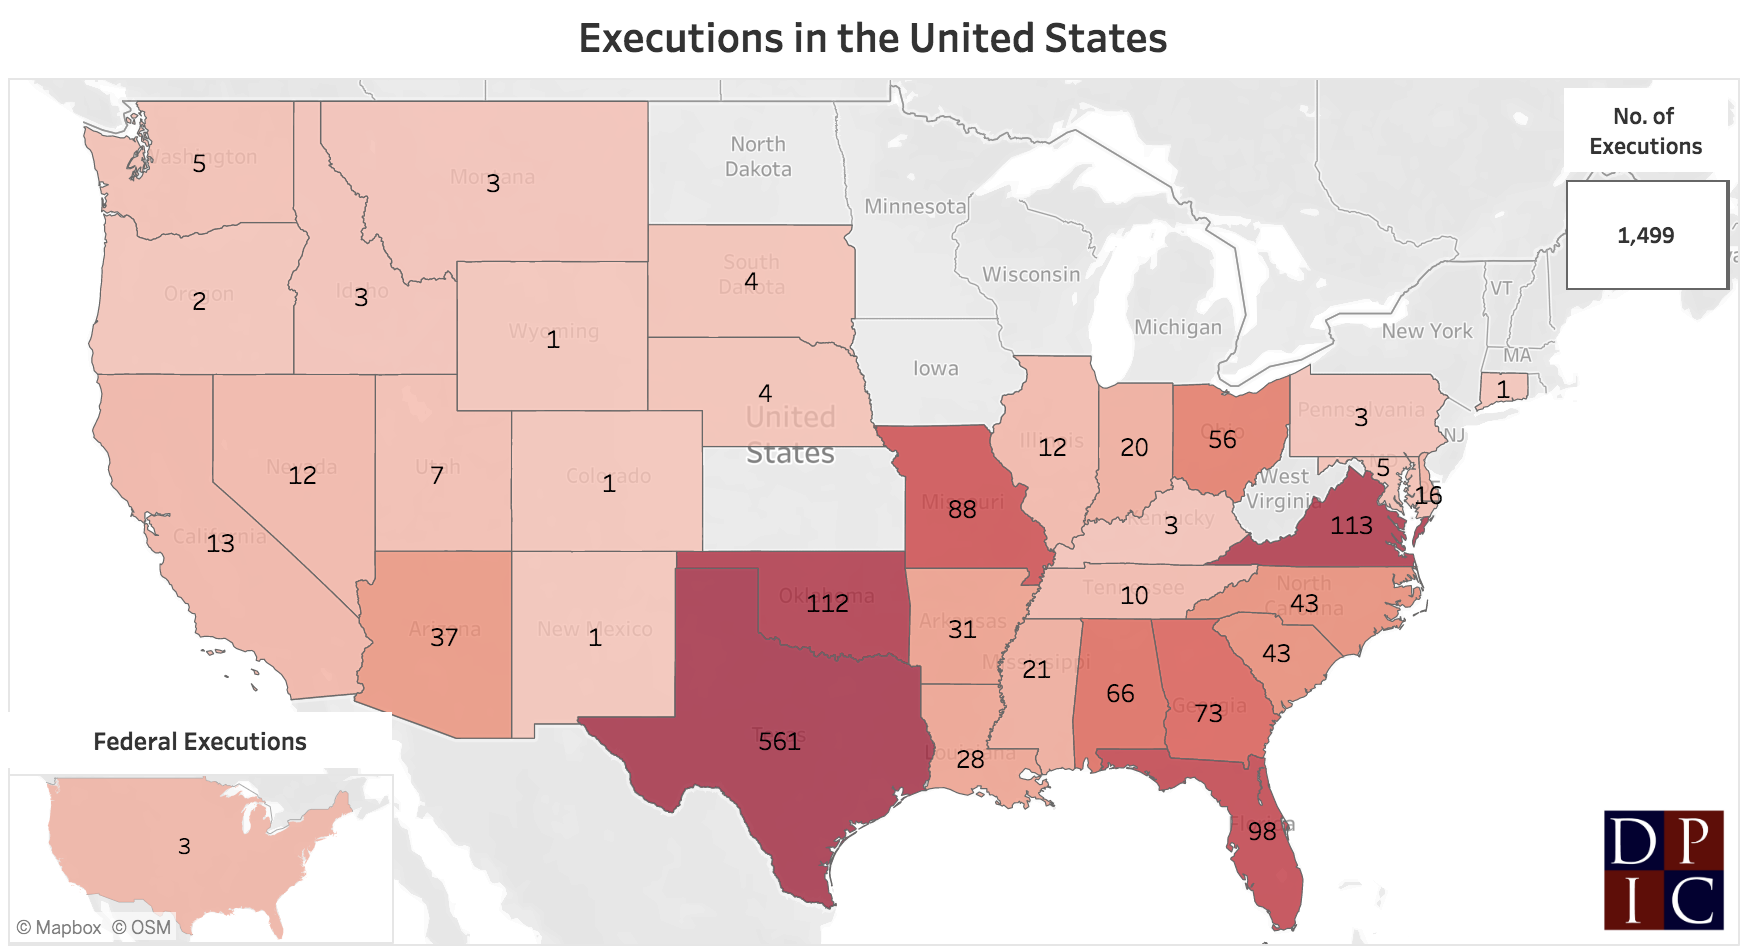 executions rate by state